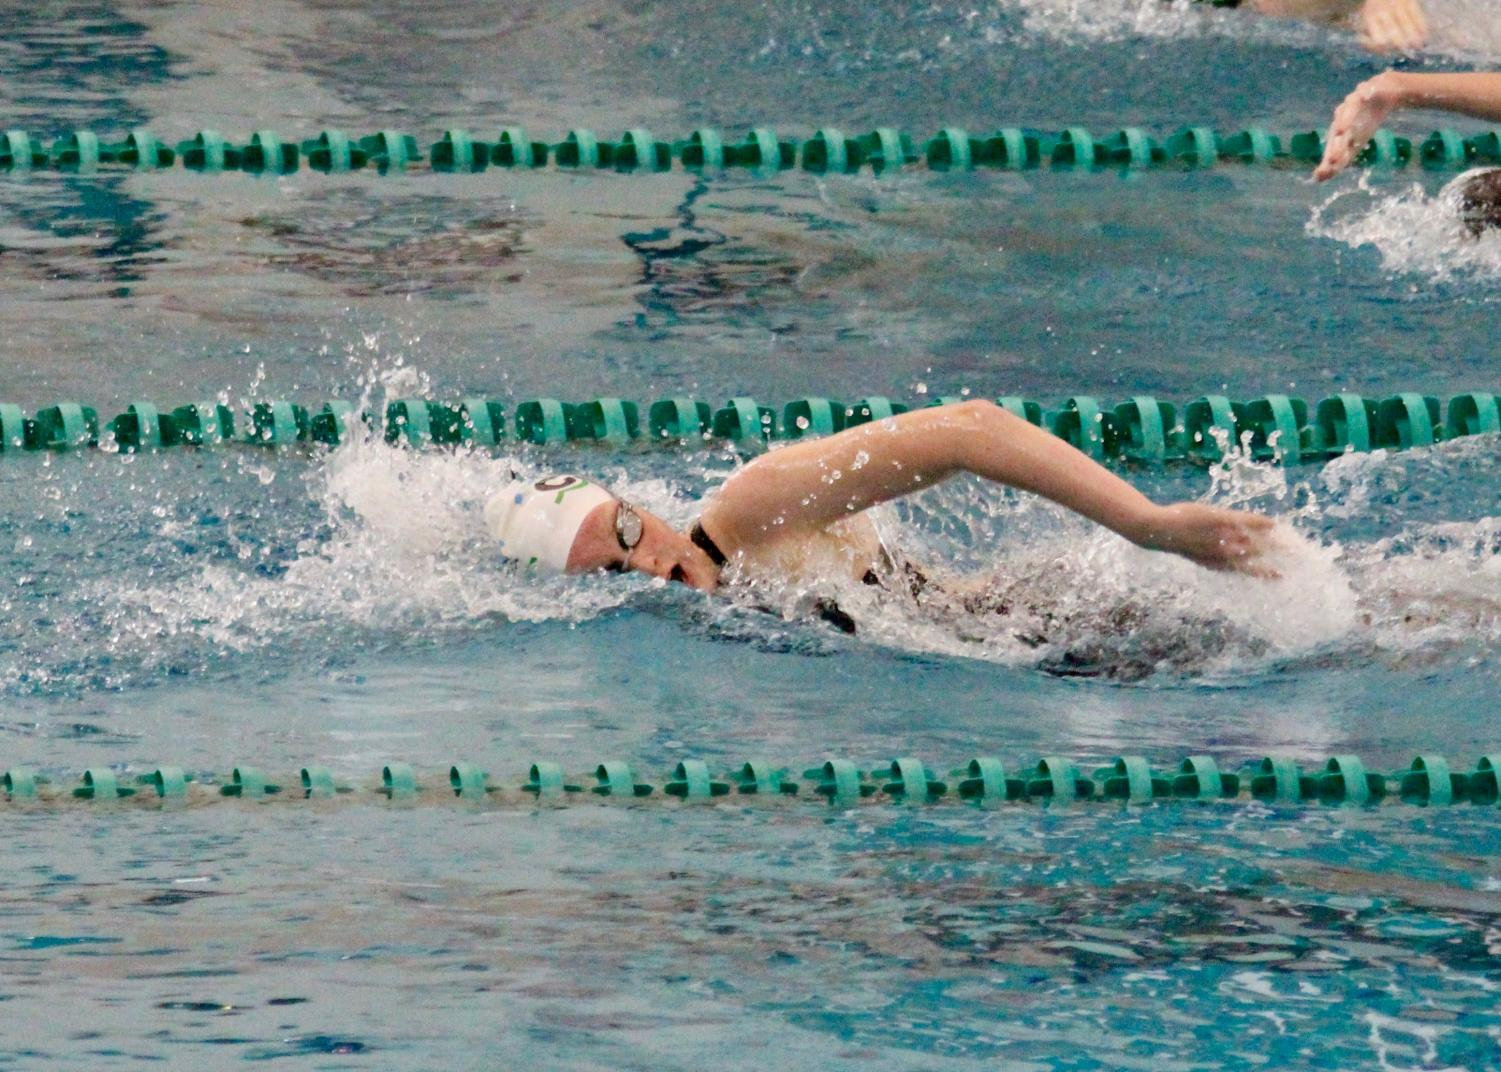 Mottl competes in a freestyle swimming event during a swim meet.